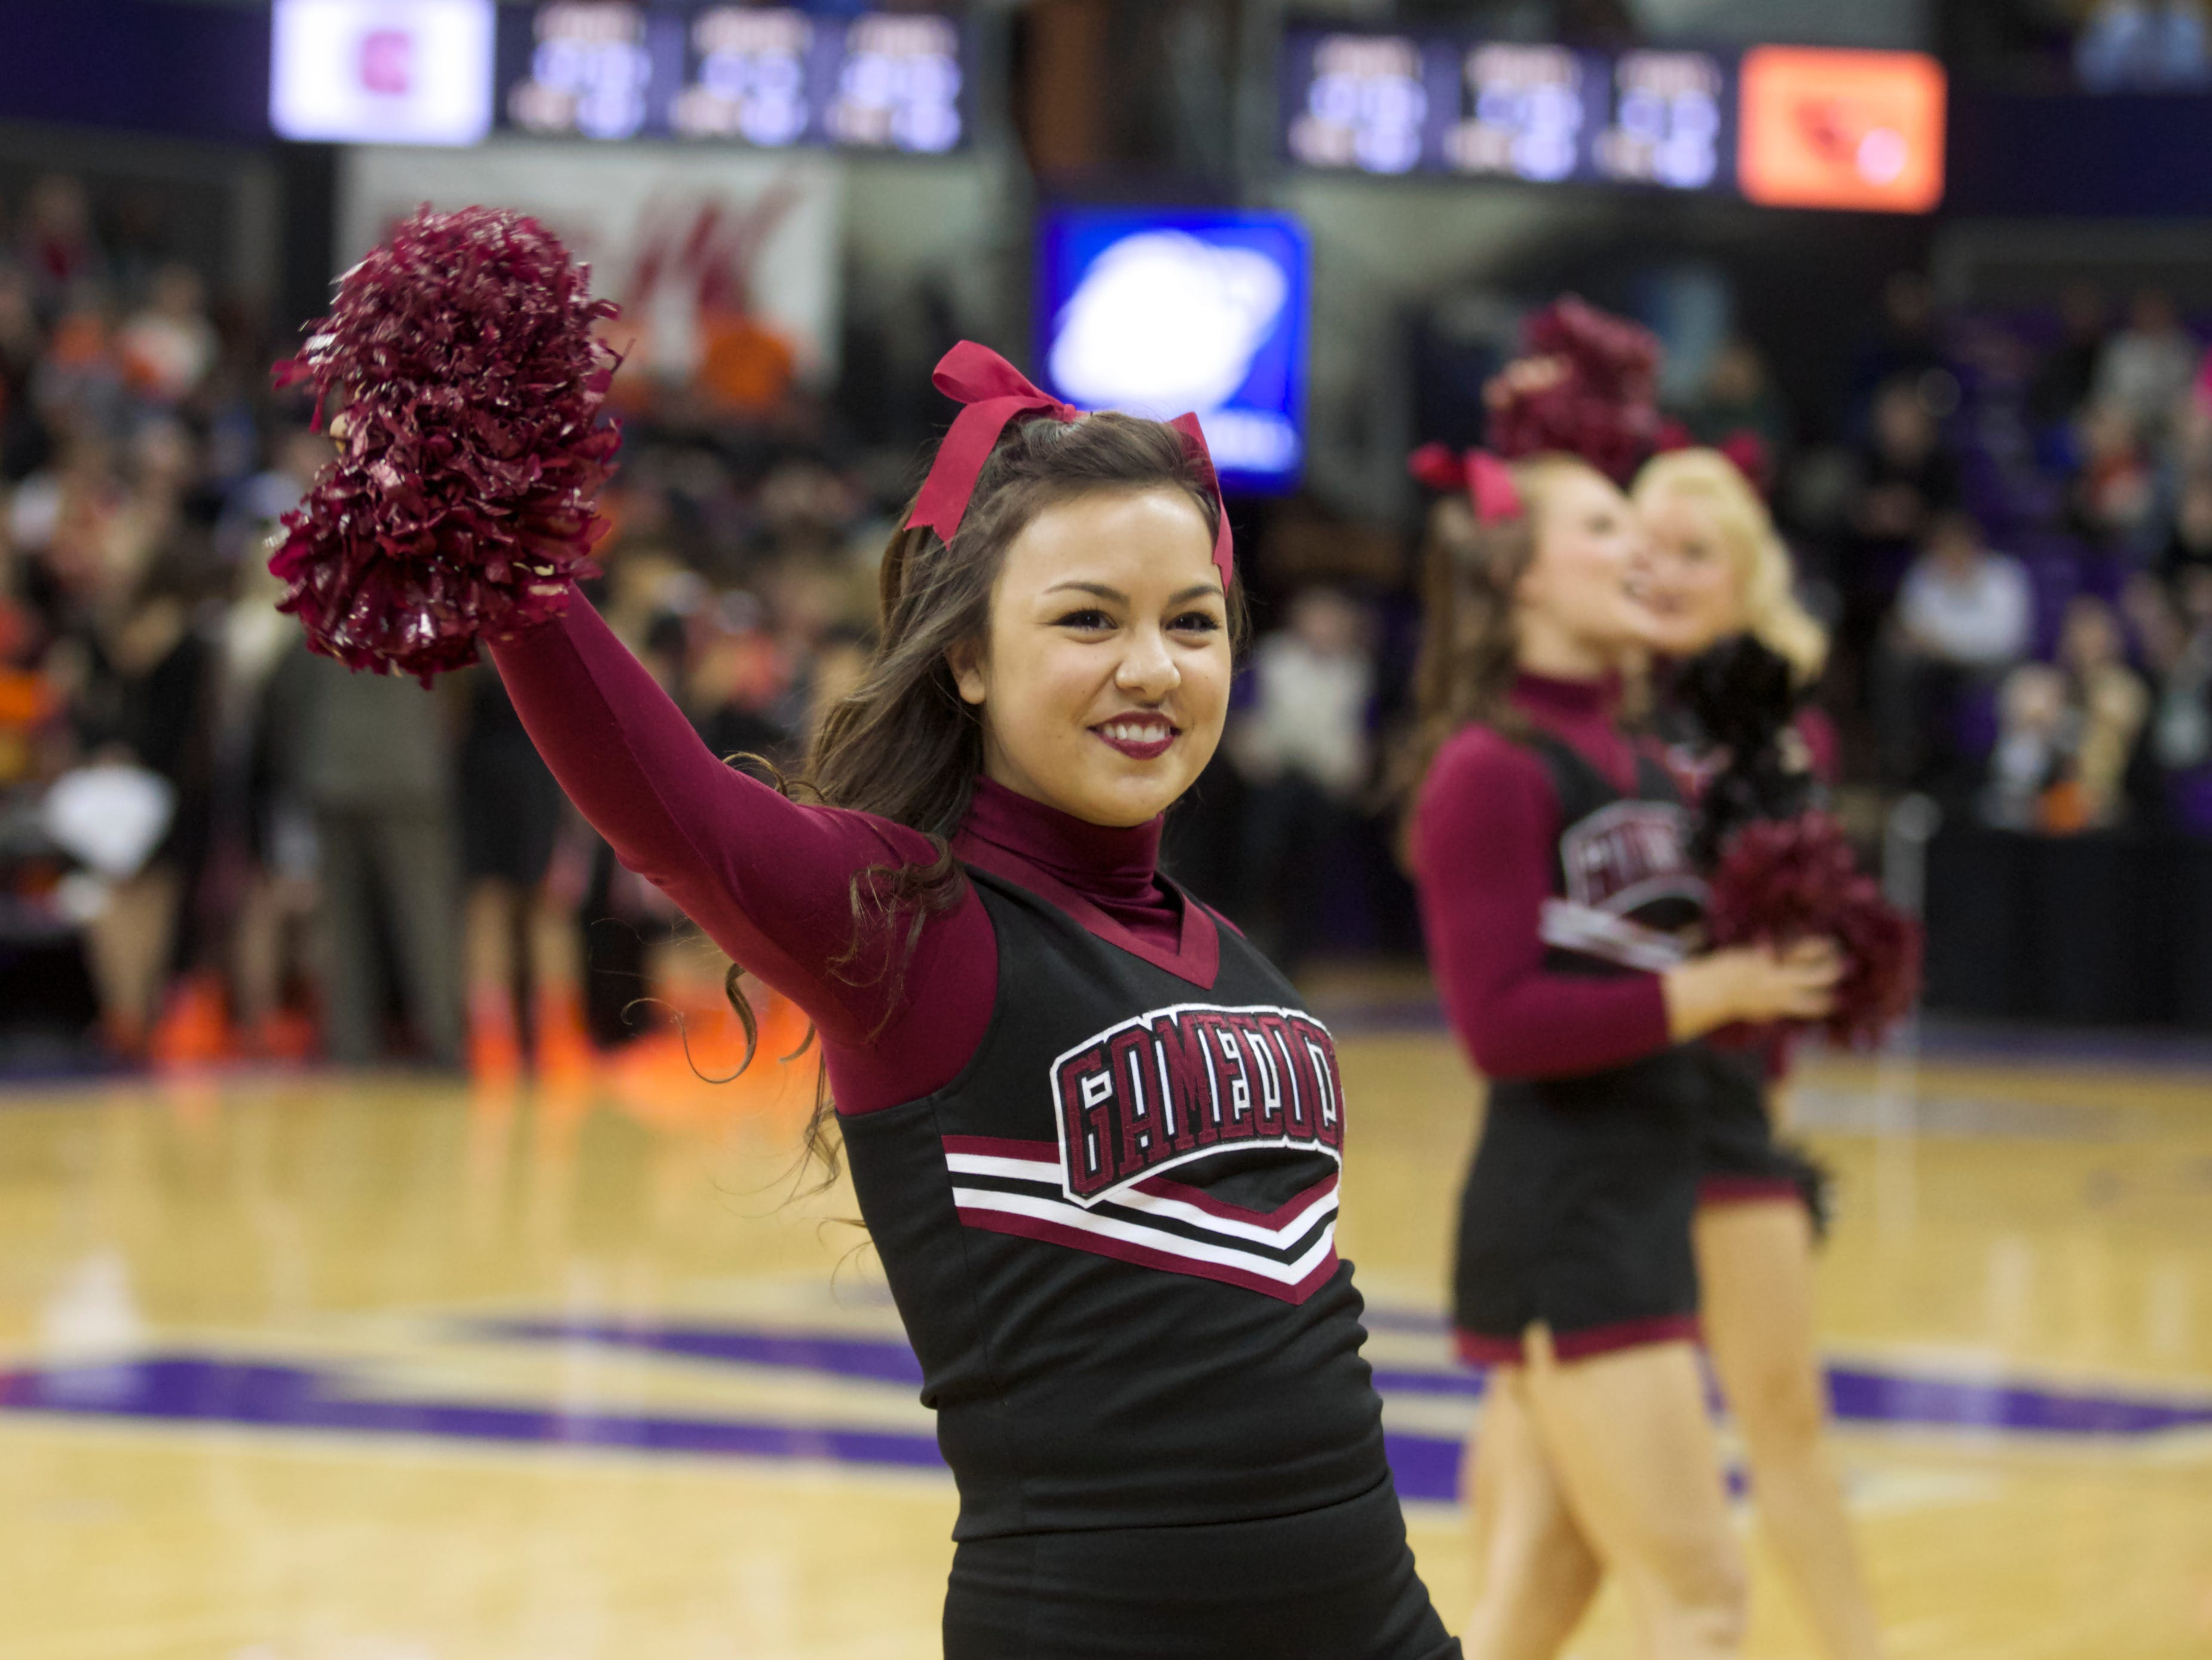 A South Carolina cheerleader performs during the second half of a second-round game against Oregon State in the NCAA women's college basketball tournament Tuesday, March 25, 2014, in Seattle. South Carolina won 78-69. (AP Photo/Stephen Brashear)